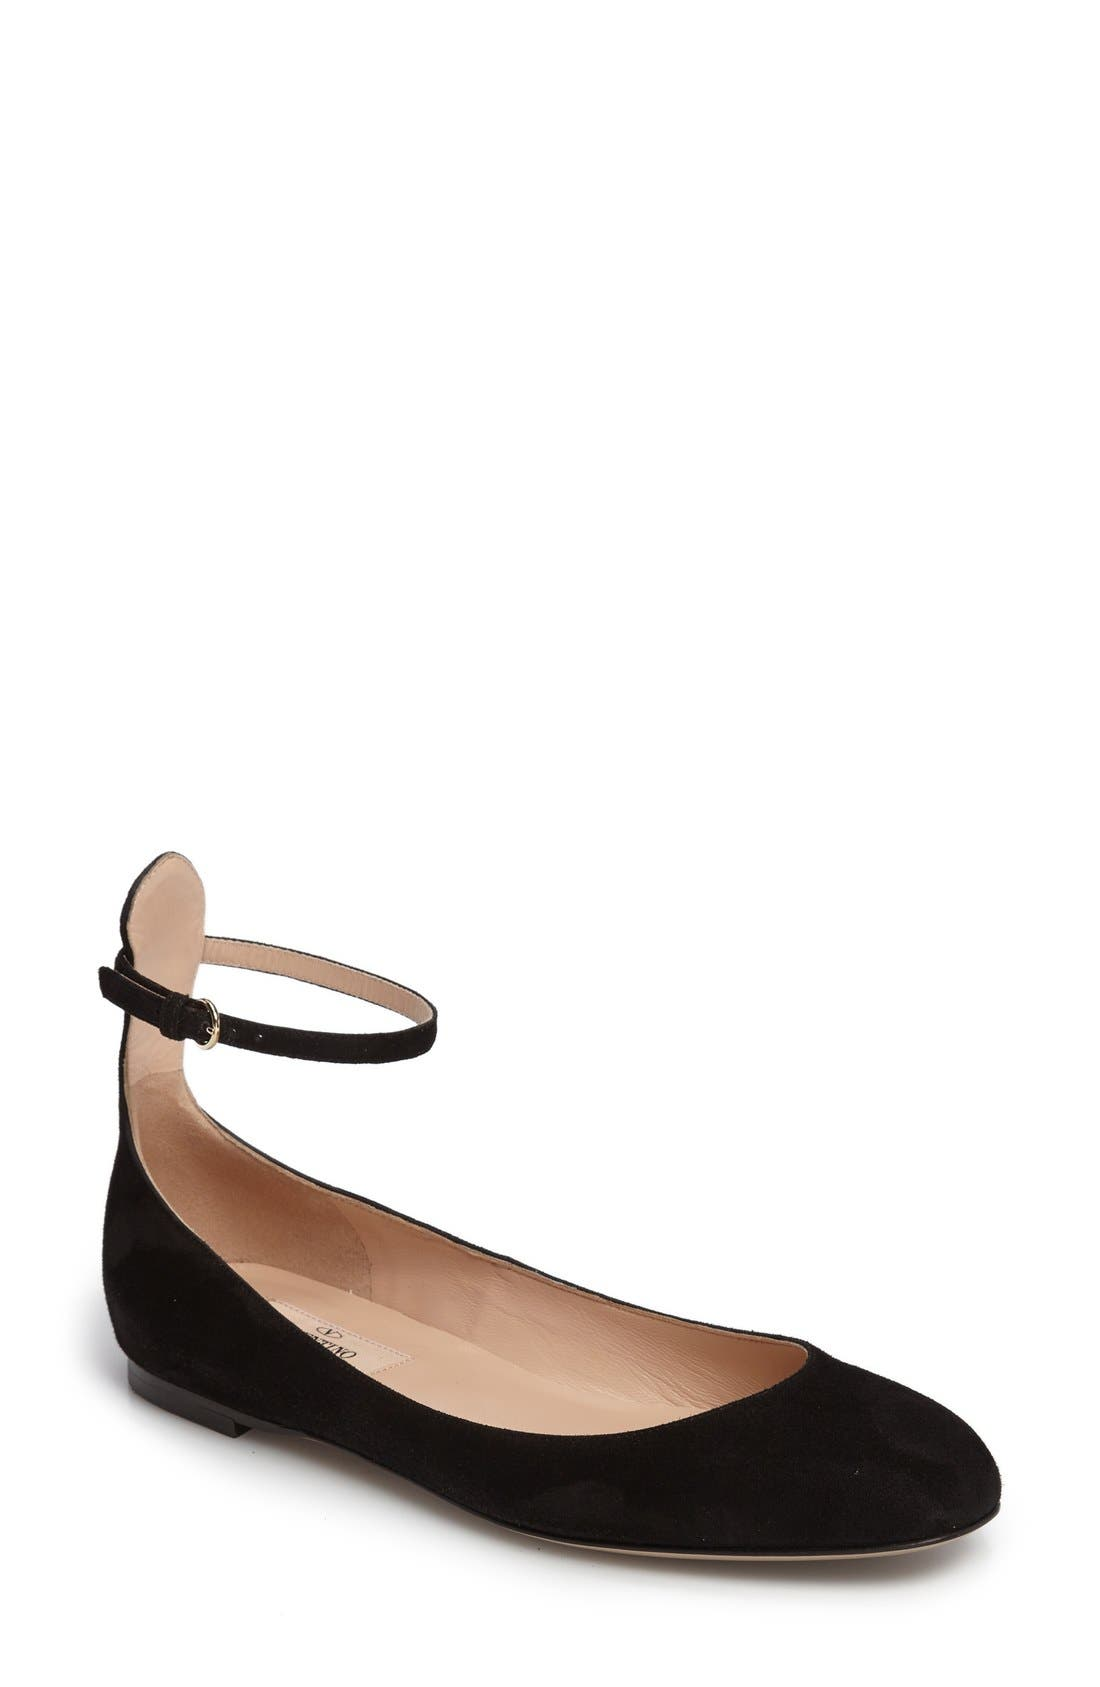 Alternate Image 1 Selected - Valentino Ankle Strap Ballet Flat (Women)